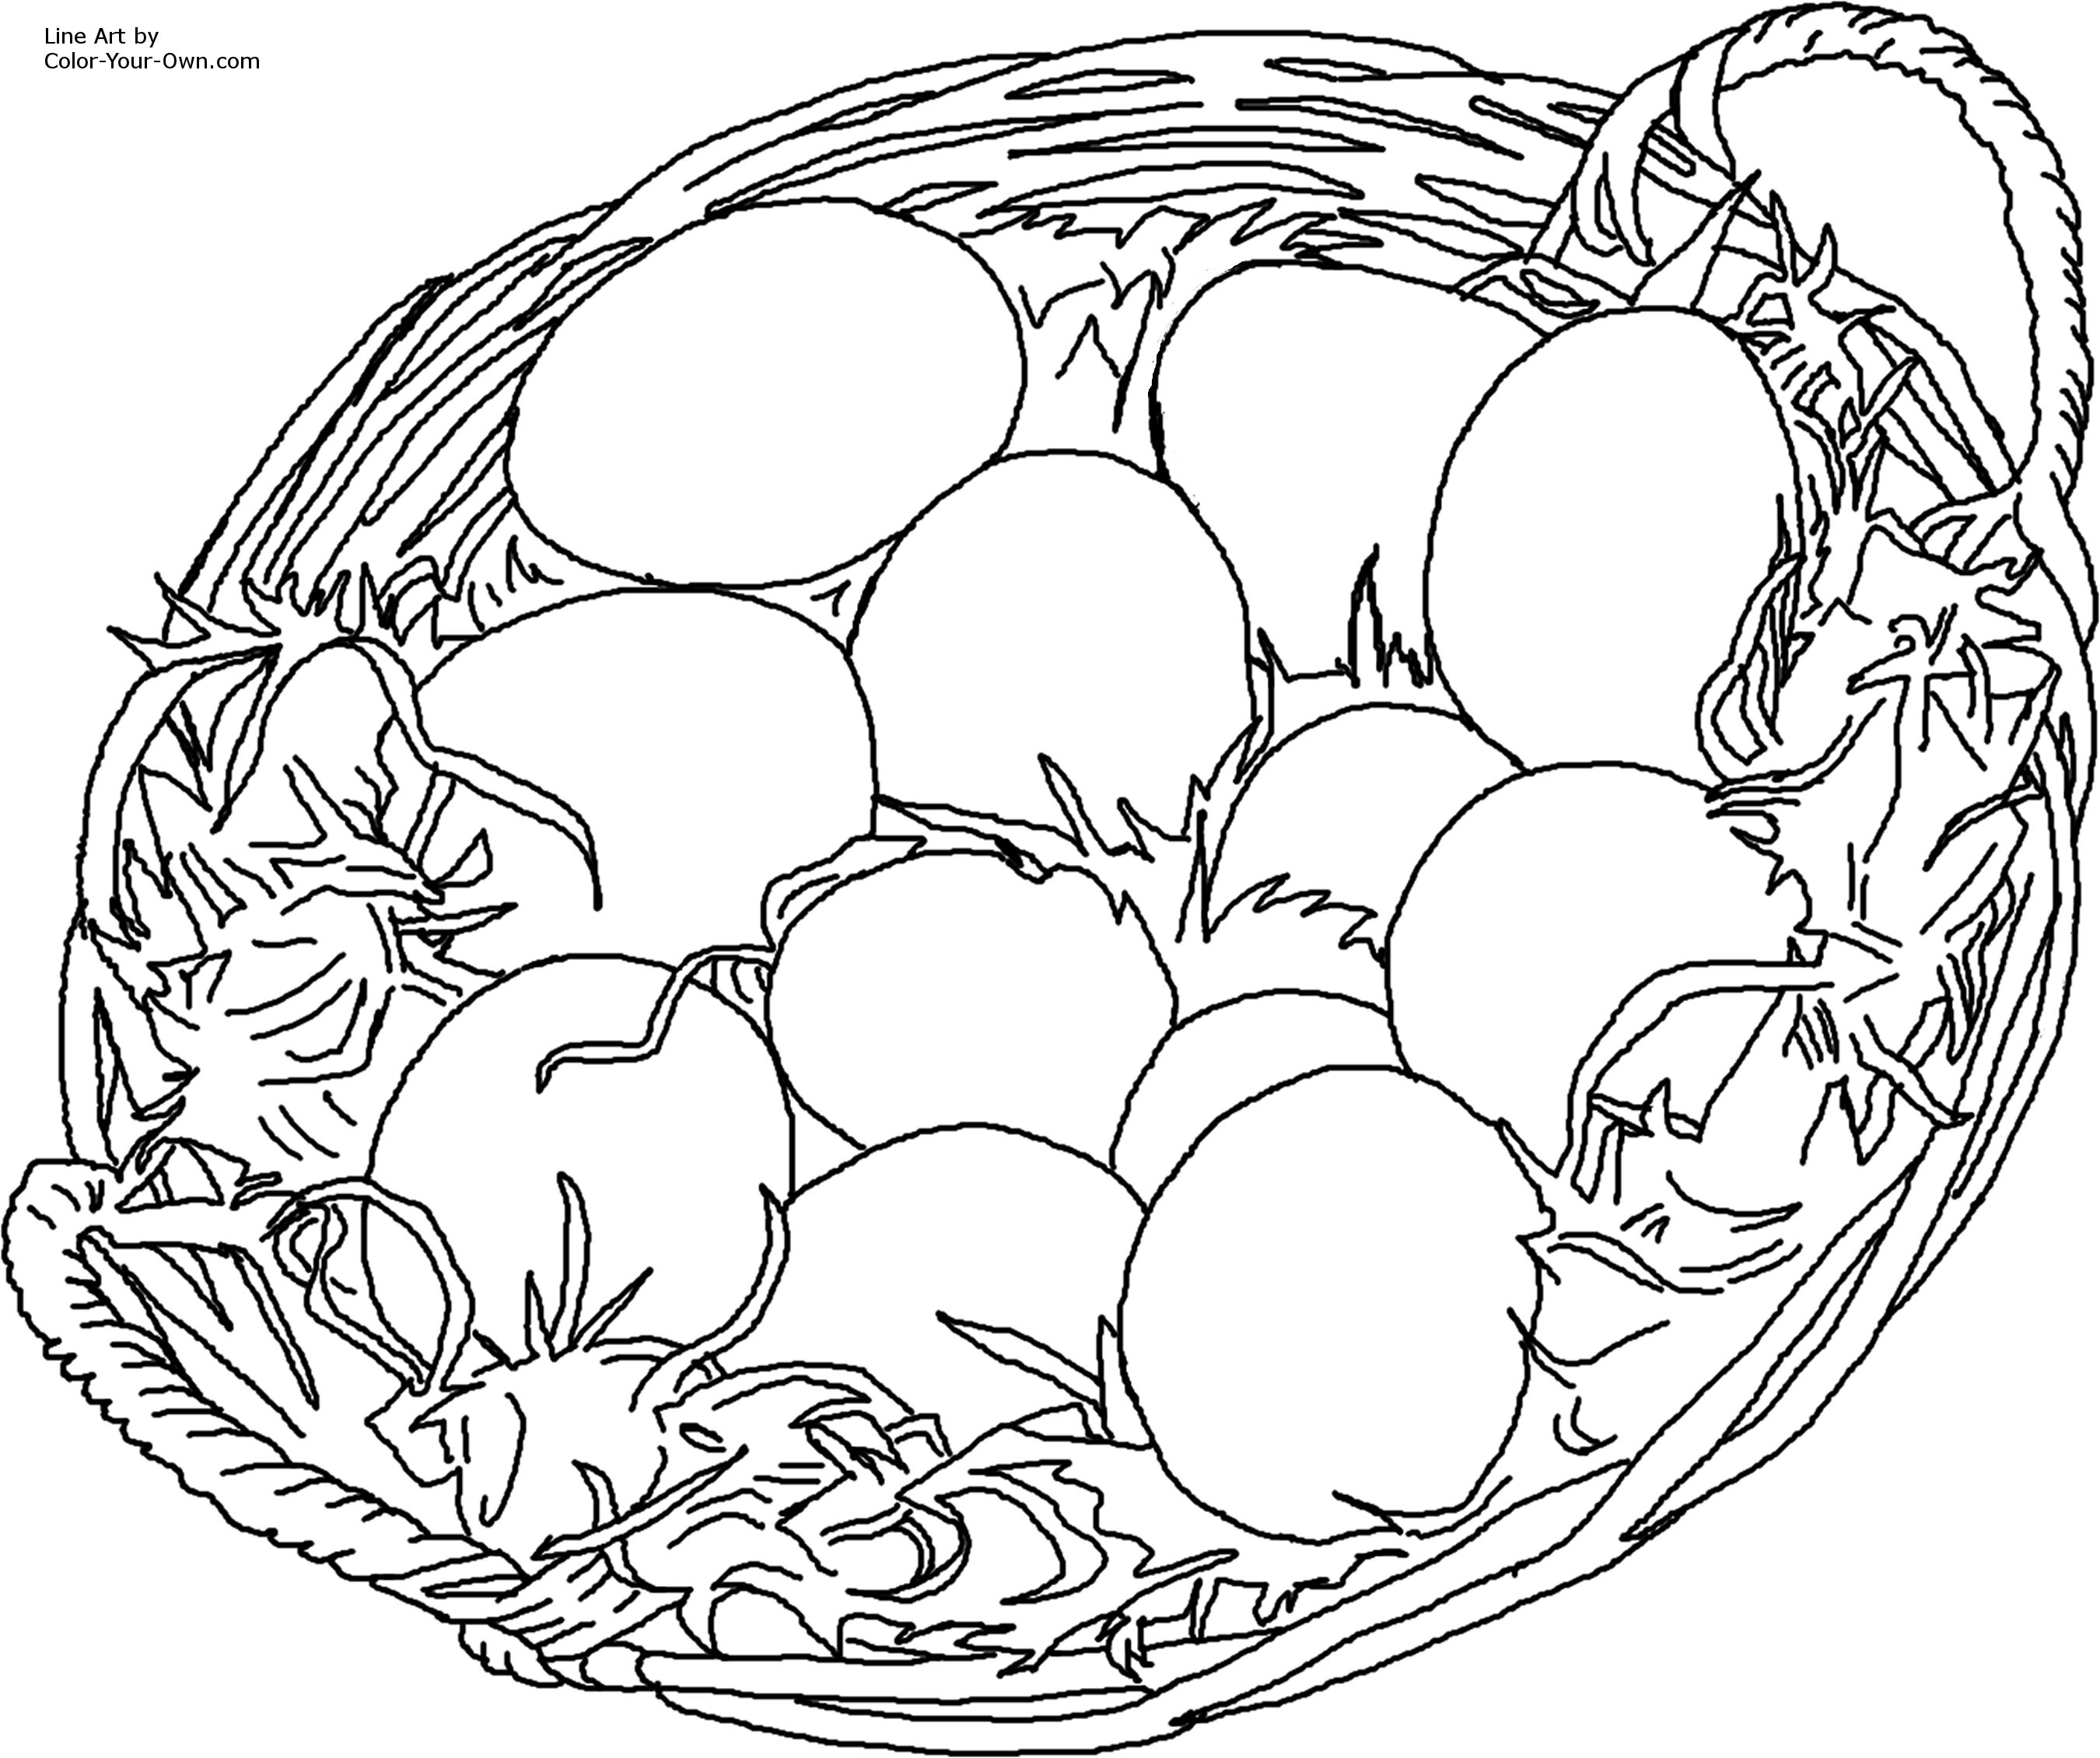 Egg Line Drawing At Getdrawings Com Free For Personal Use Egg Line